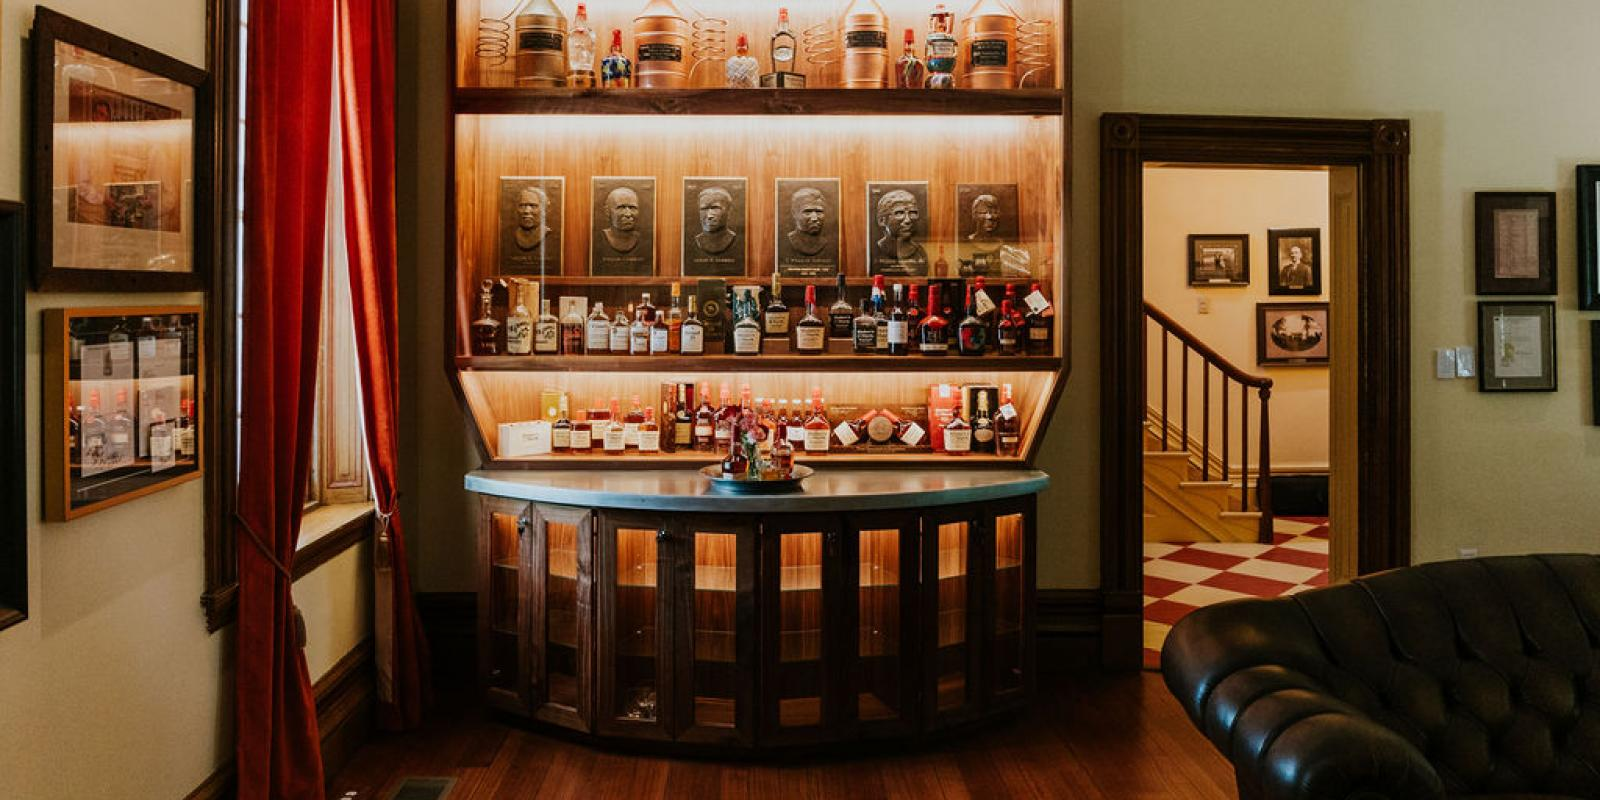 Whisky parlor featuring a custom-made bar and decades of bourbon artifacts